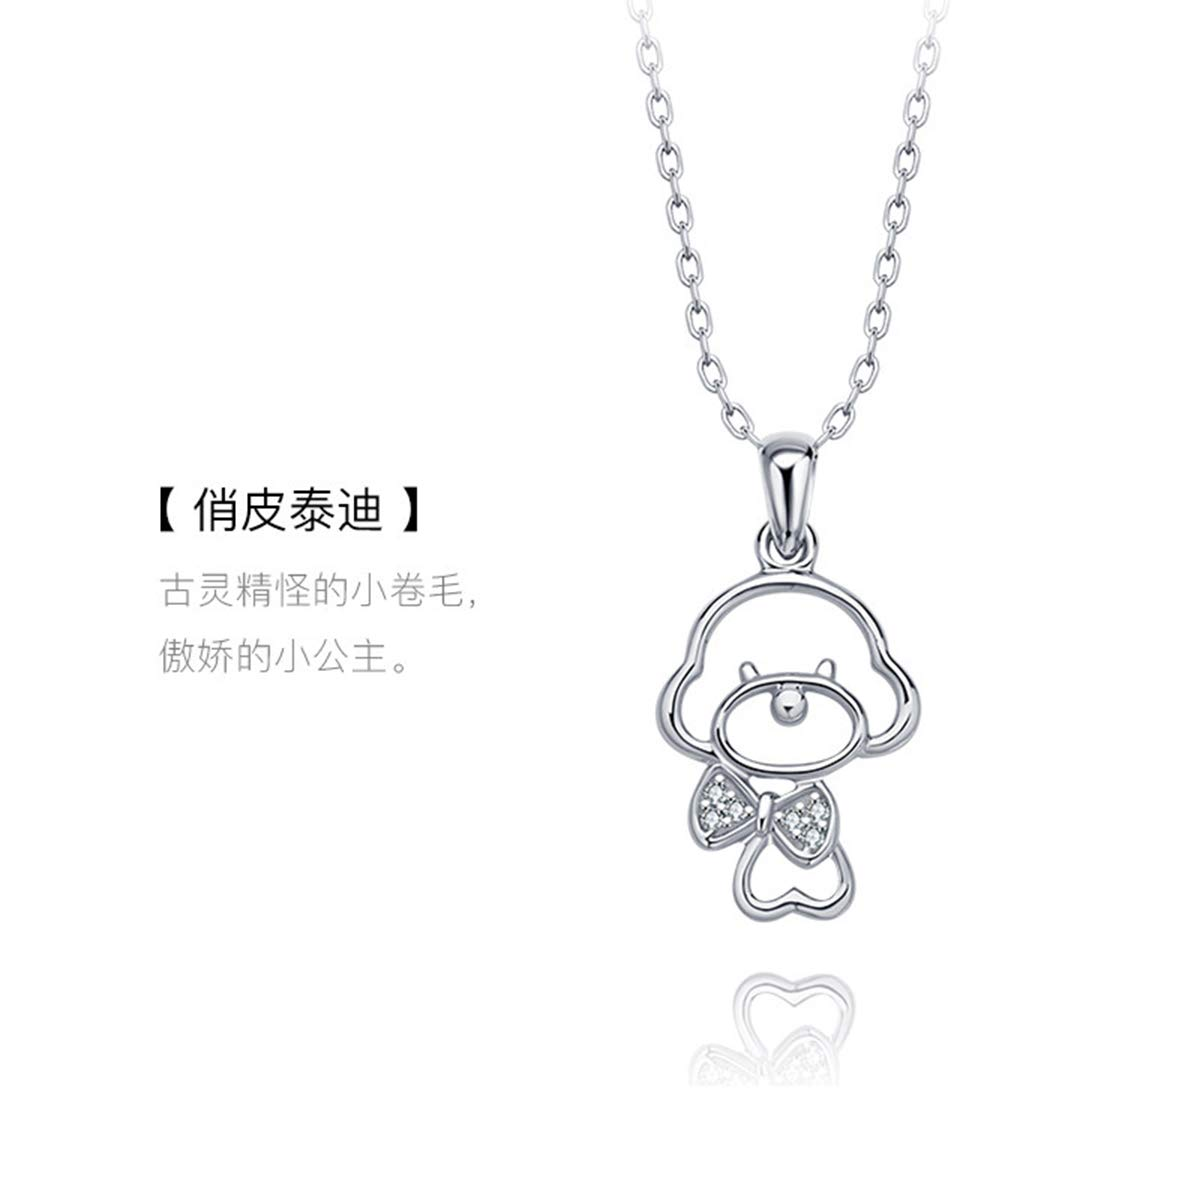 Onlyfo 925 Silver Crystal Accent Filigree Teddy Dog with Bowknot Pendant Necklace with Jewelry Box,Short Dog Necklace for Women (Silver)